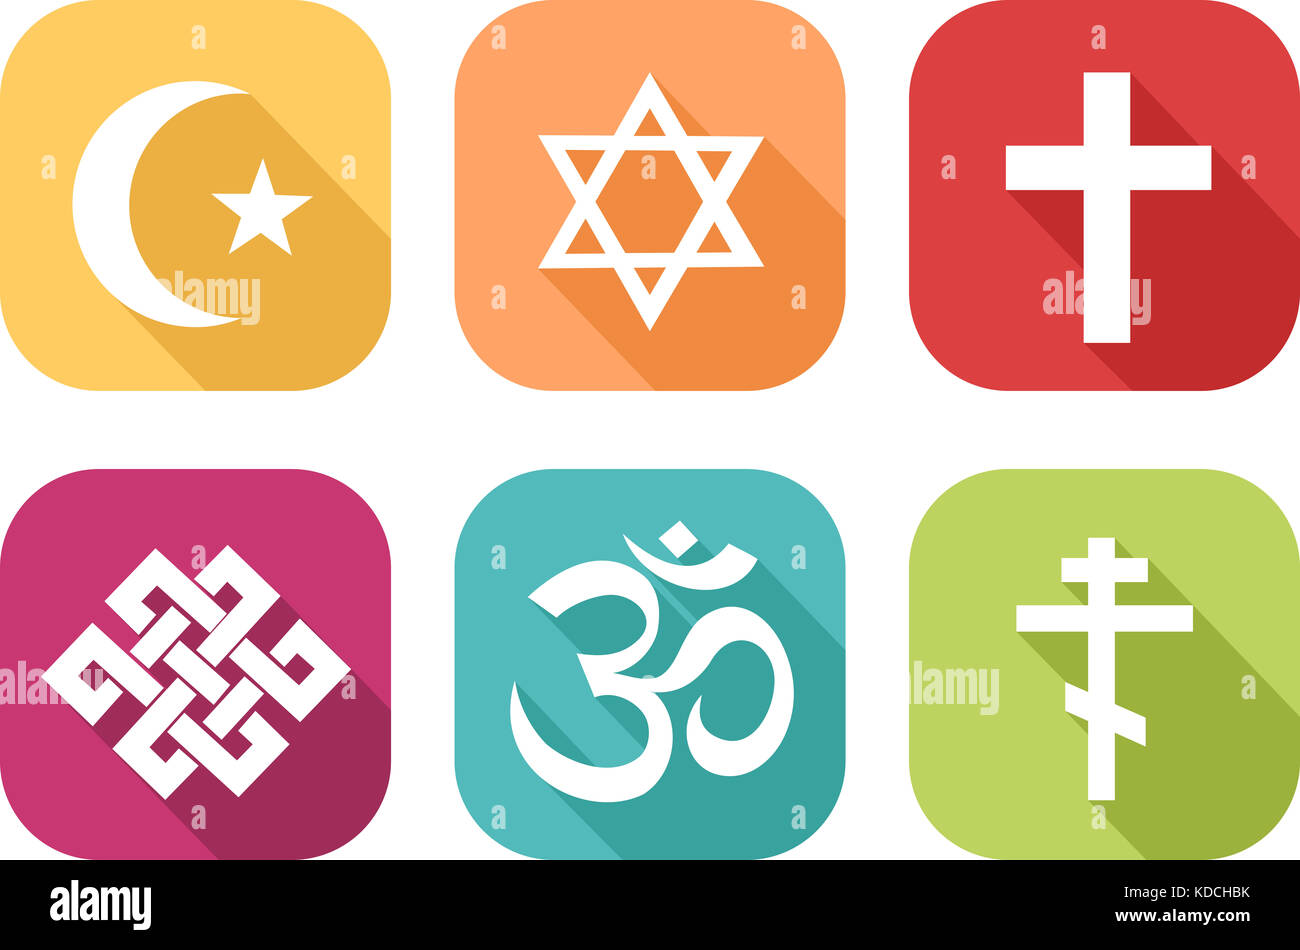 Different religion symbols stock photos different religion colorful icon of symbols of different religions stock image buycottarizona